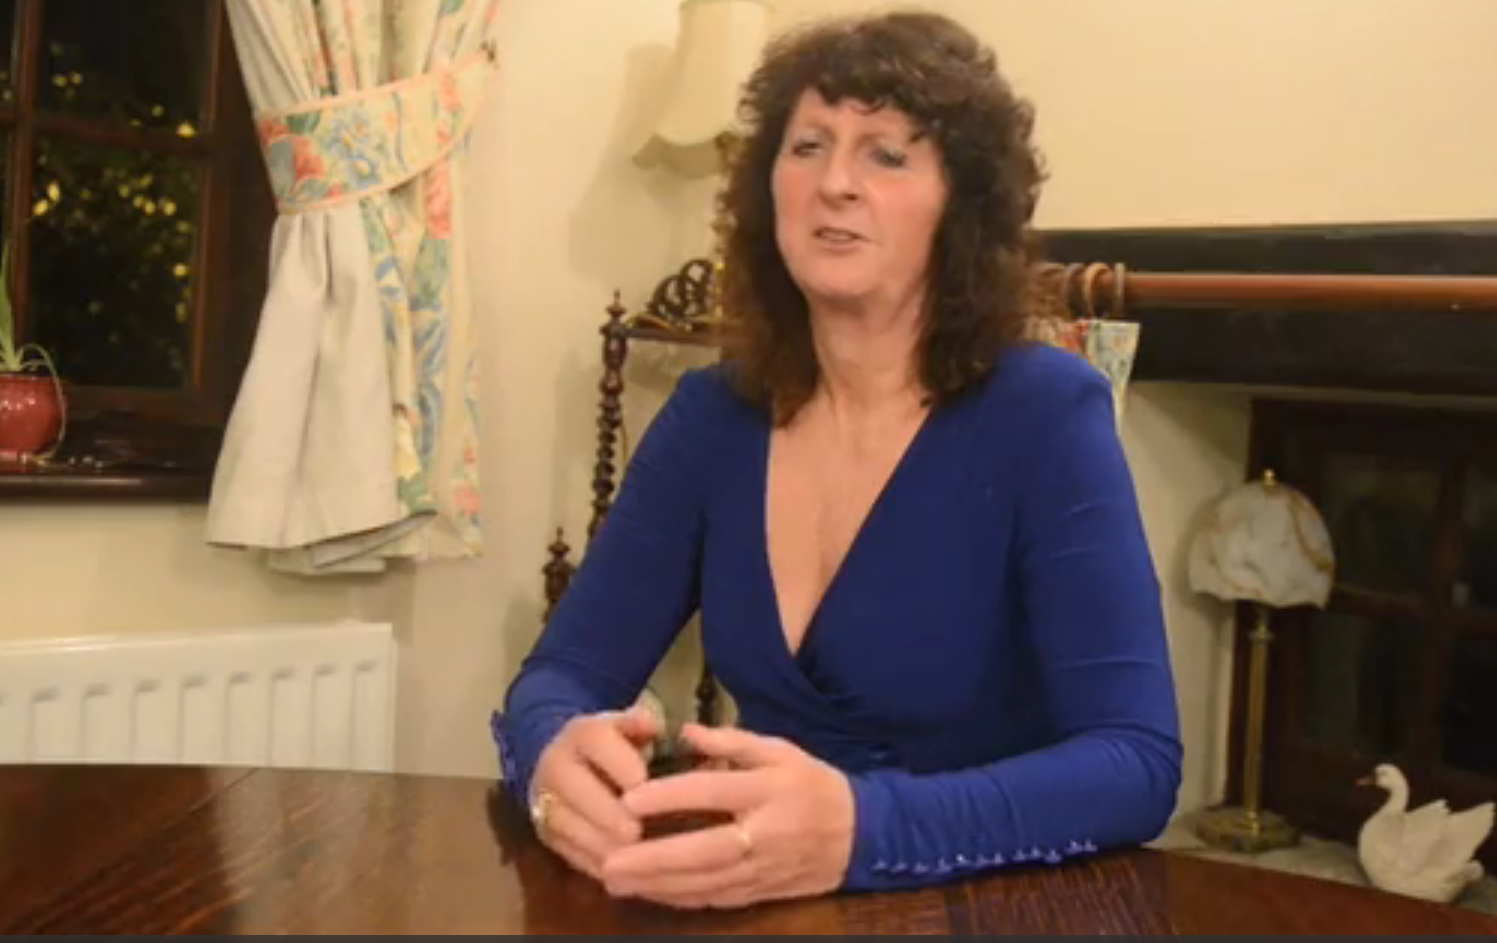 Ann Wheeler lost the use of her legs after she damaged nerves in her spine